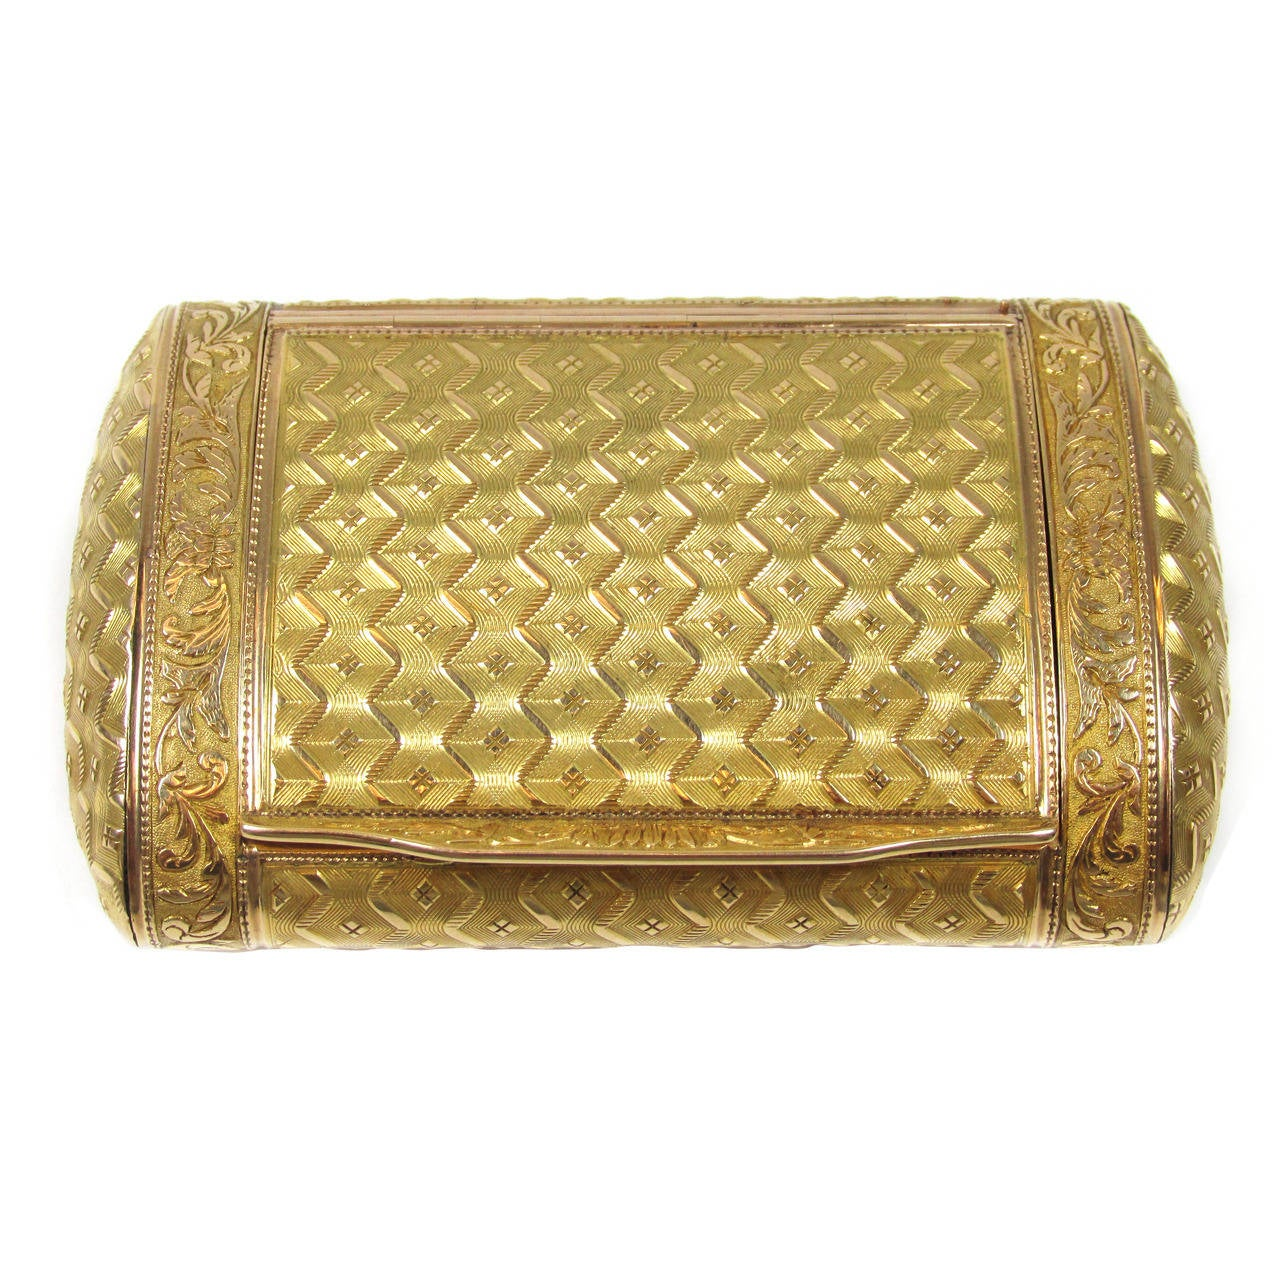 antique french gold snuff box for sale at 1stdibs. Black Bedroom Furniture Sets. Home Design Ideas